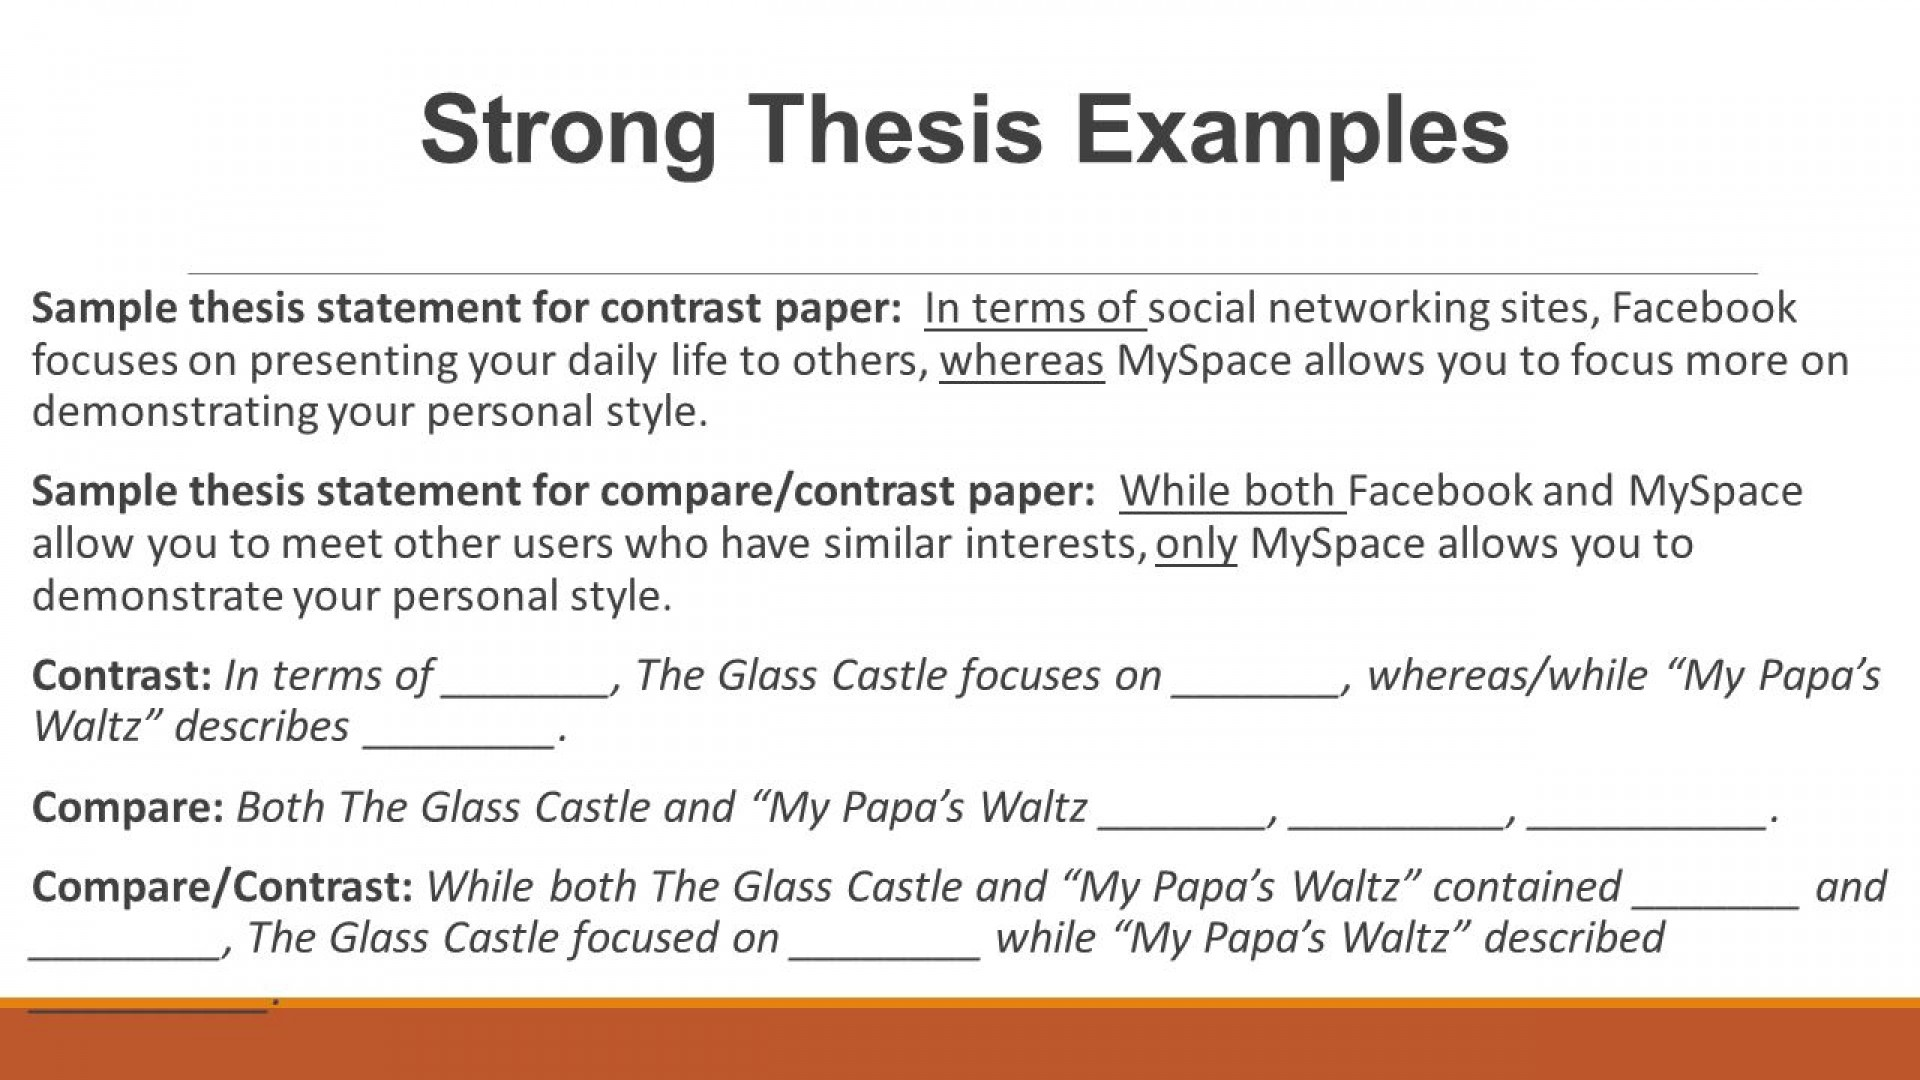 006 Essay Example Thesis Statement For Argumentative Compare And Contrast Sample Paper Comparecontrast On Social Media Singular Education Animal Testing Gun Control 1920